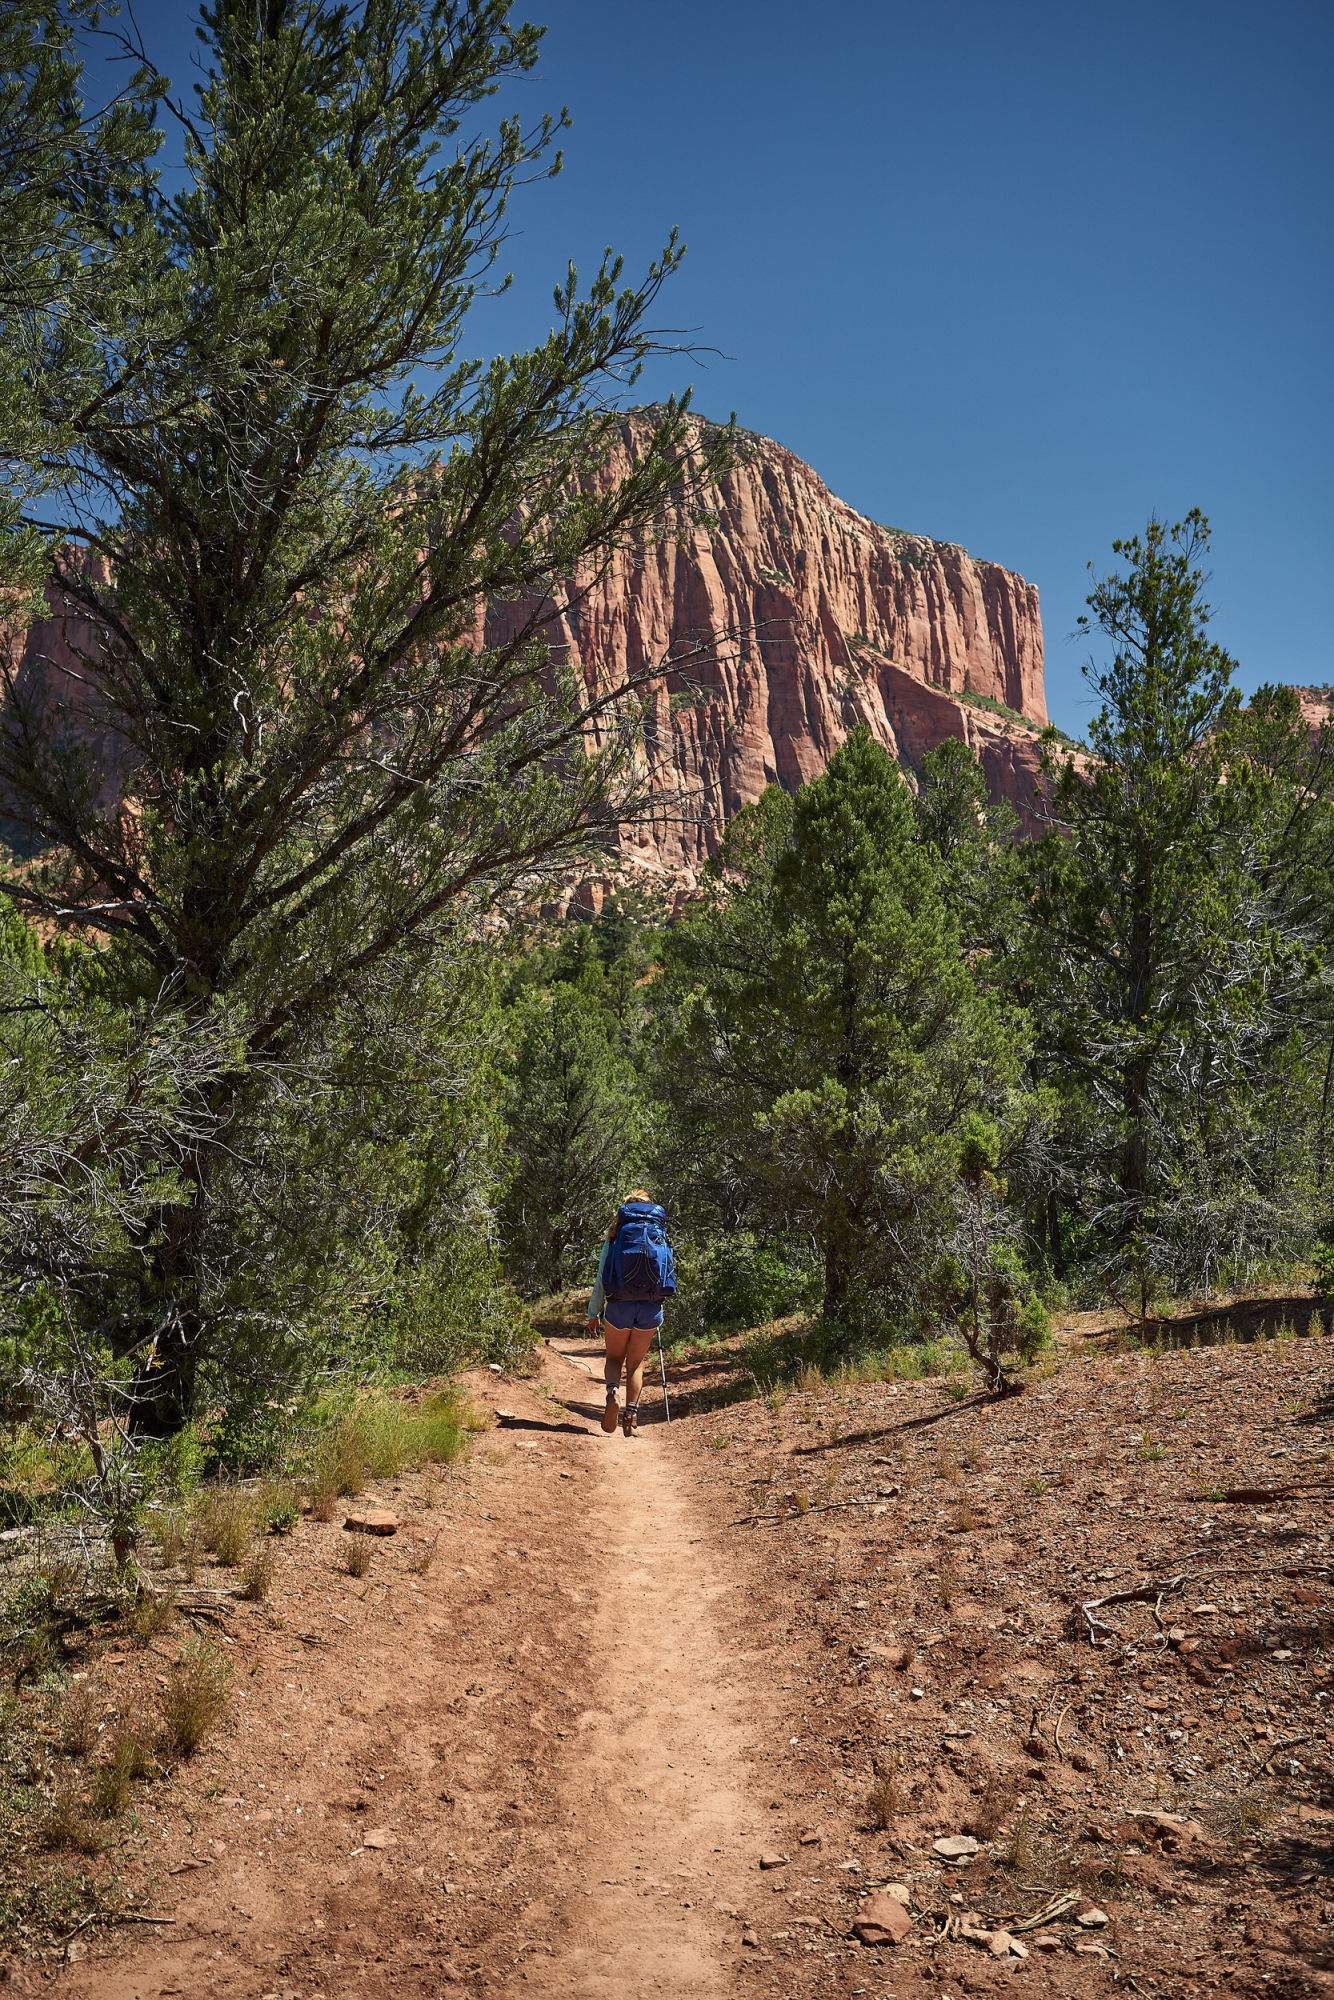 Amanda Outside backpacking through Kolob Canyon. Click through to learn all about Kolob Canyon hiking trails and the best time of year to visit! www.amandaoutside.com